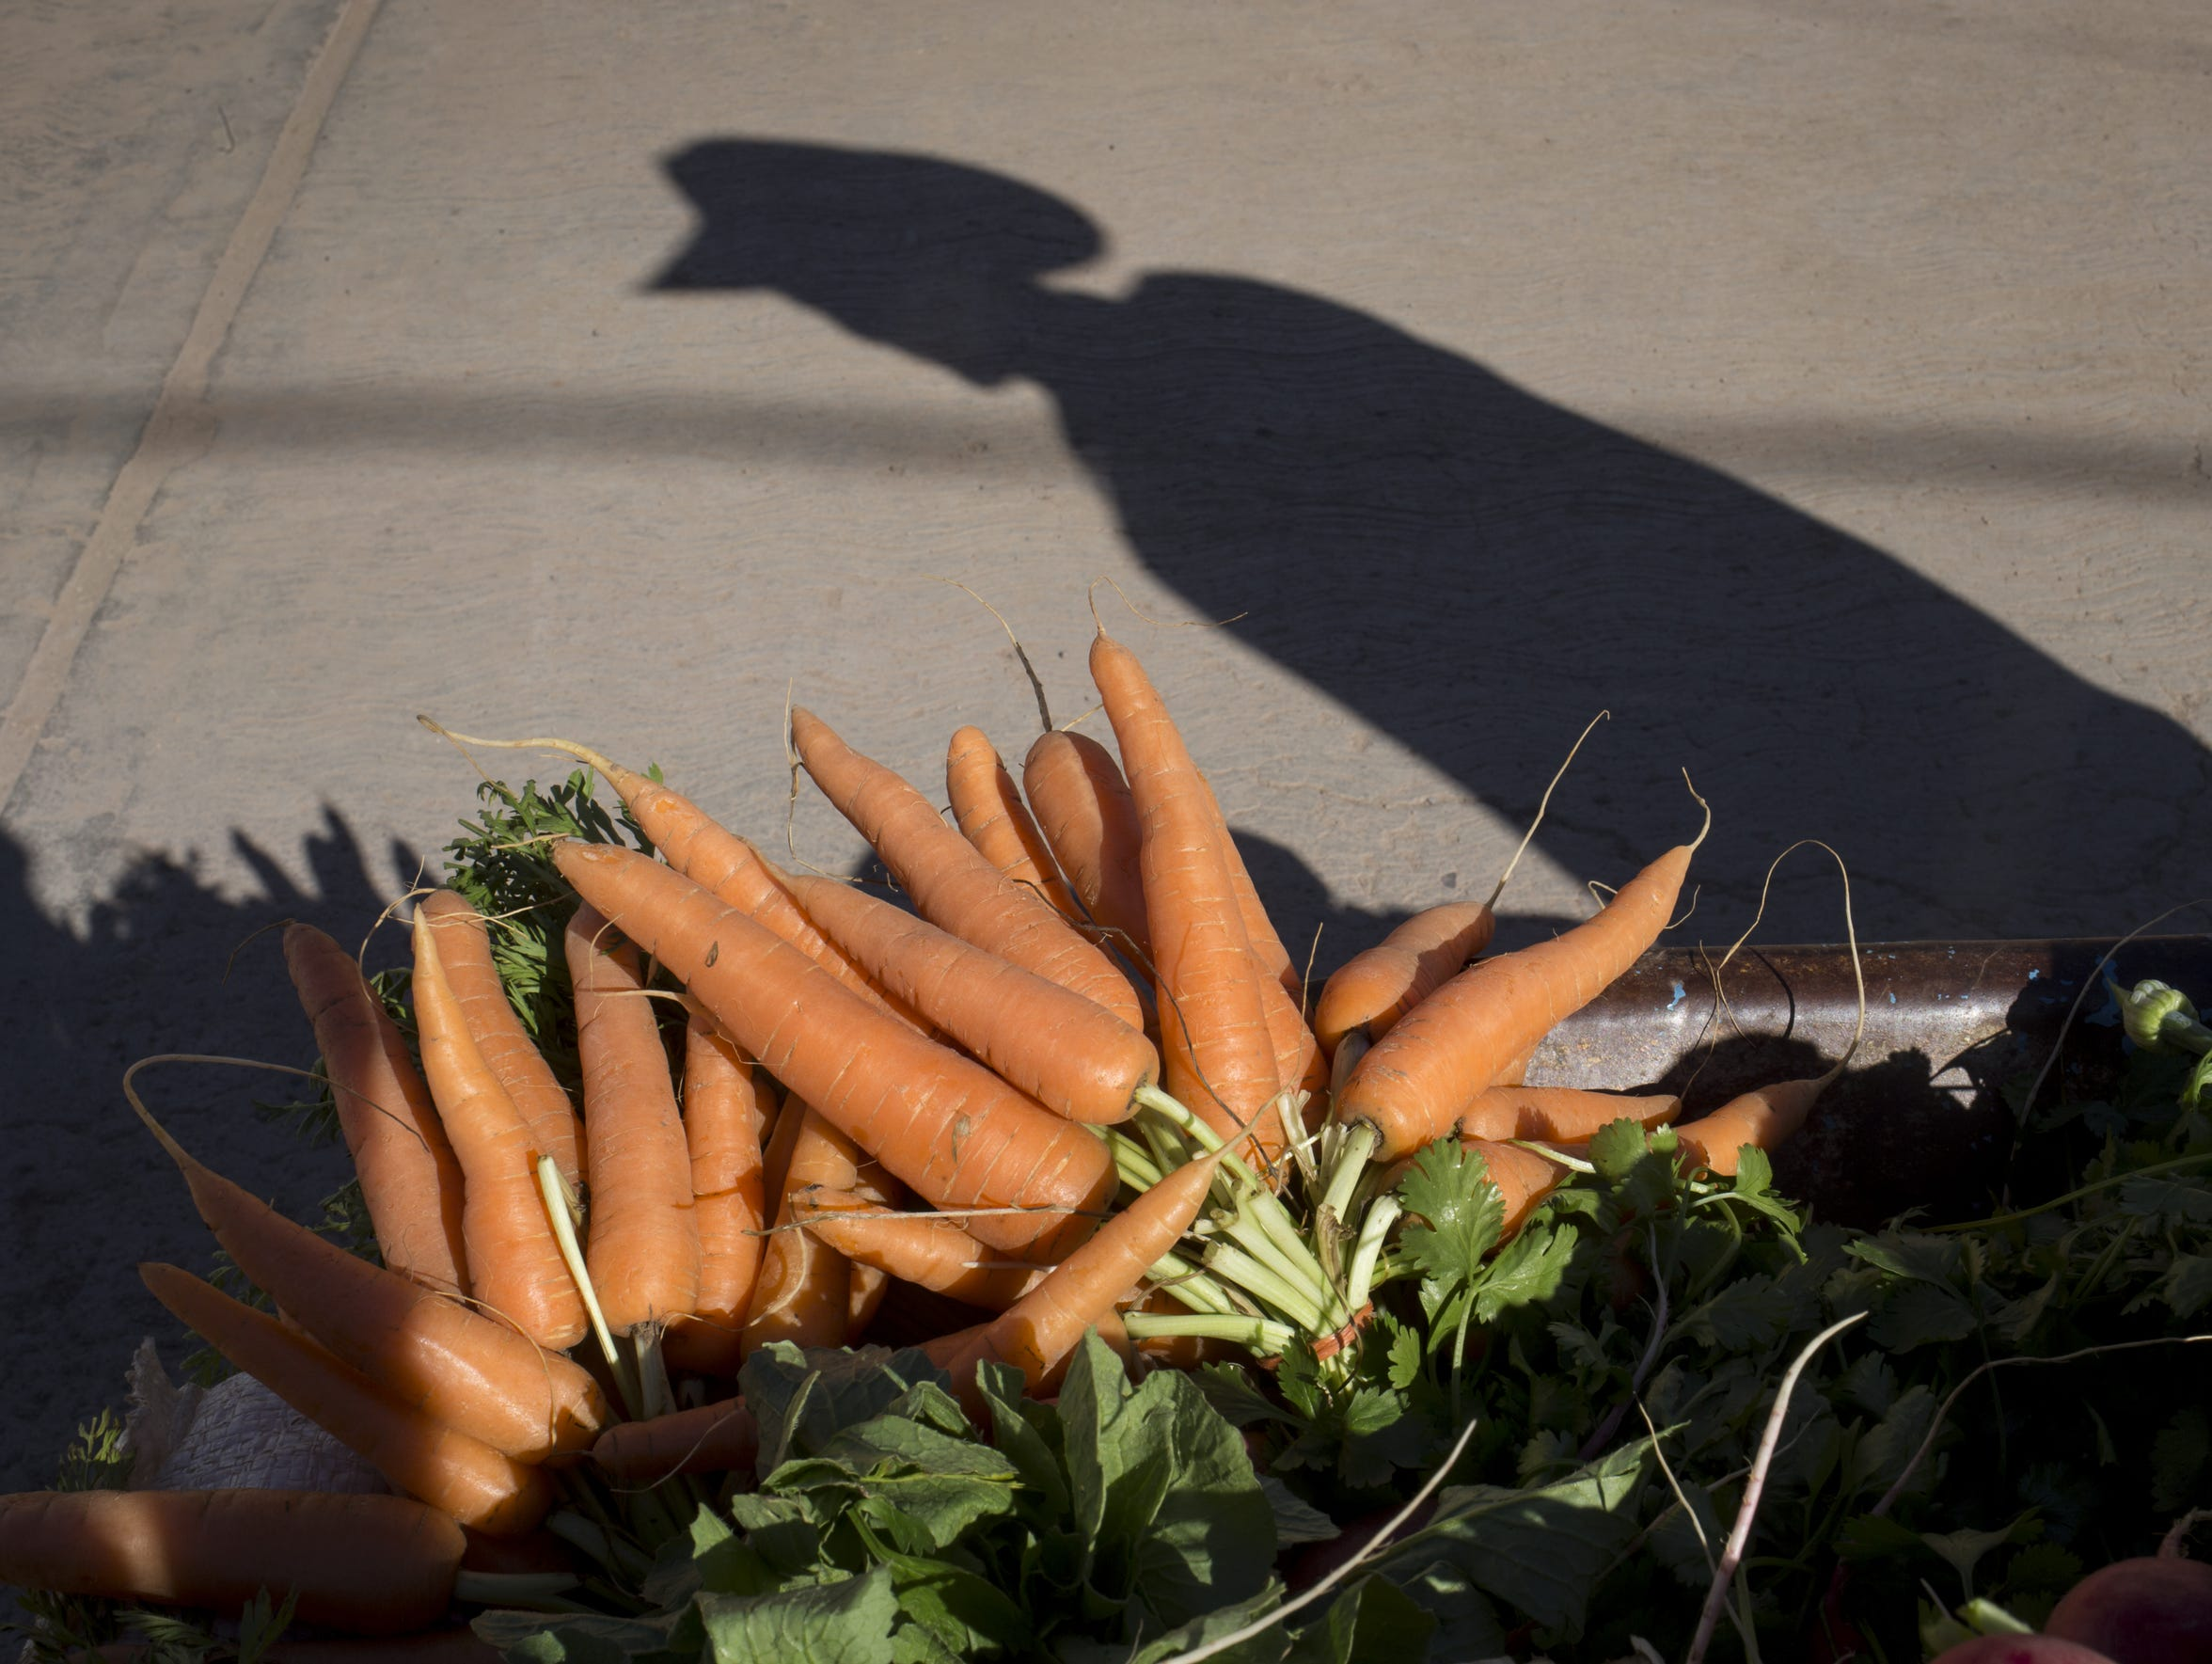 A street vendor sells vegetables in Sahuaripa, Sonora,